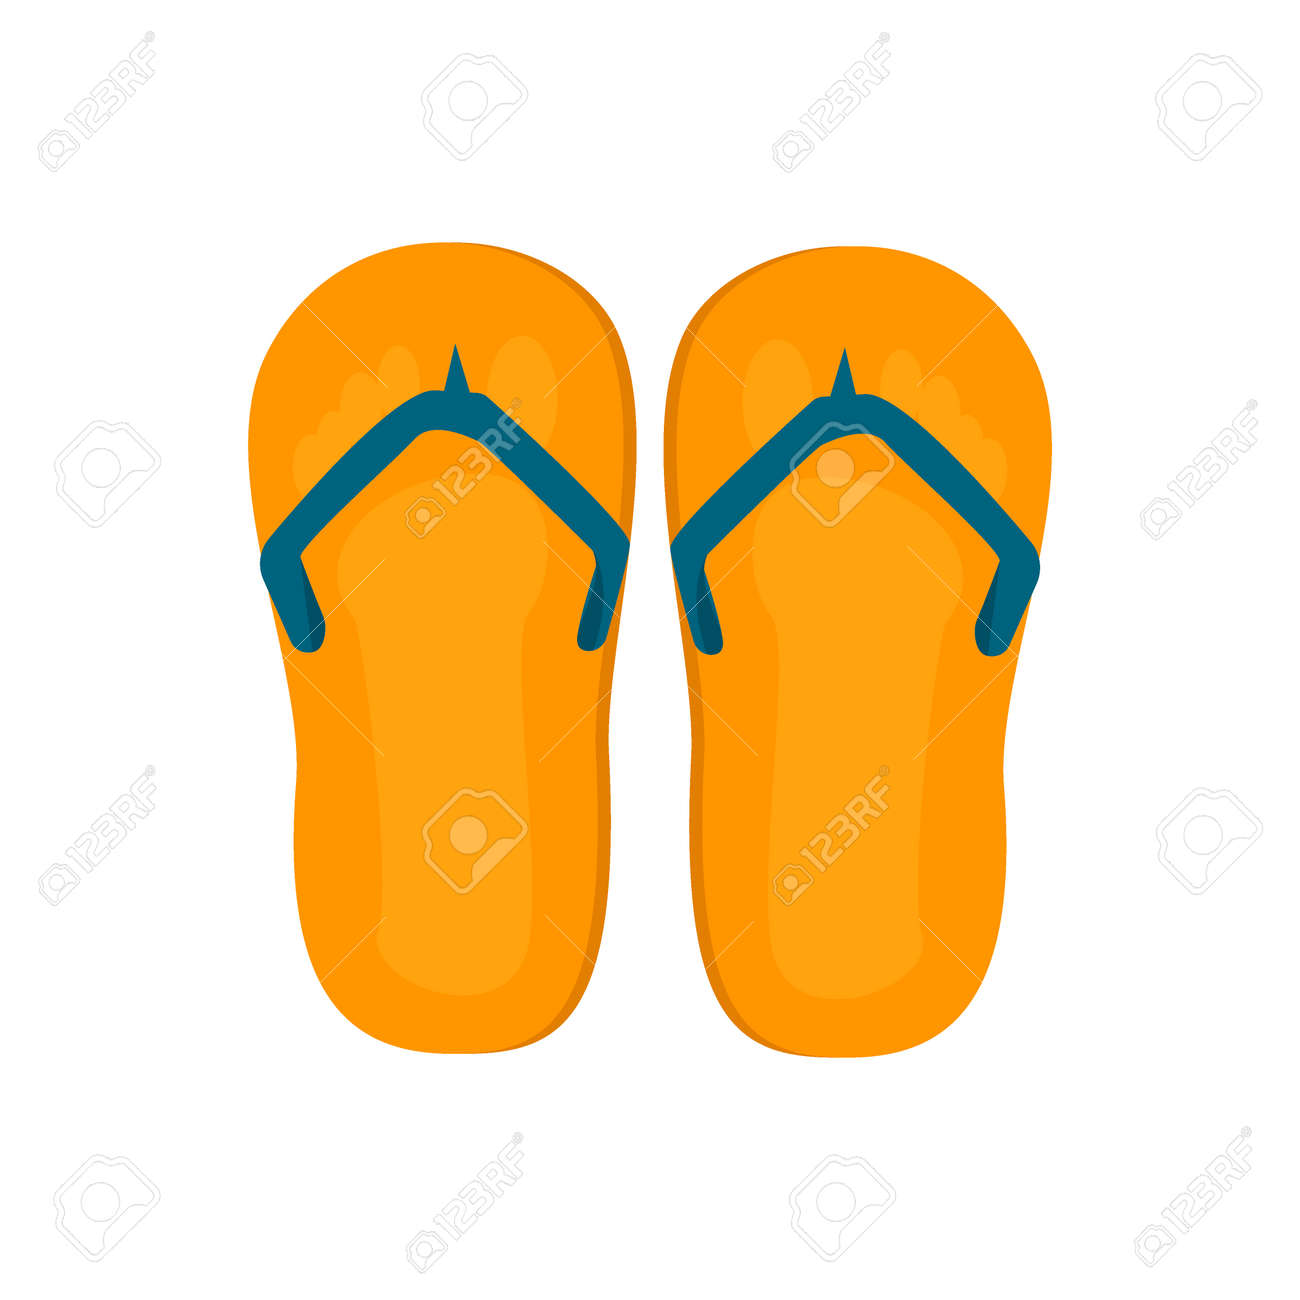 55772ce6cdb5 Pair of flip-flops isolated on a white background. Vector illustration flip  flops.